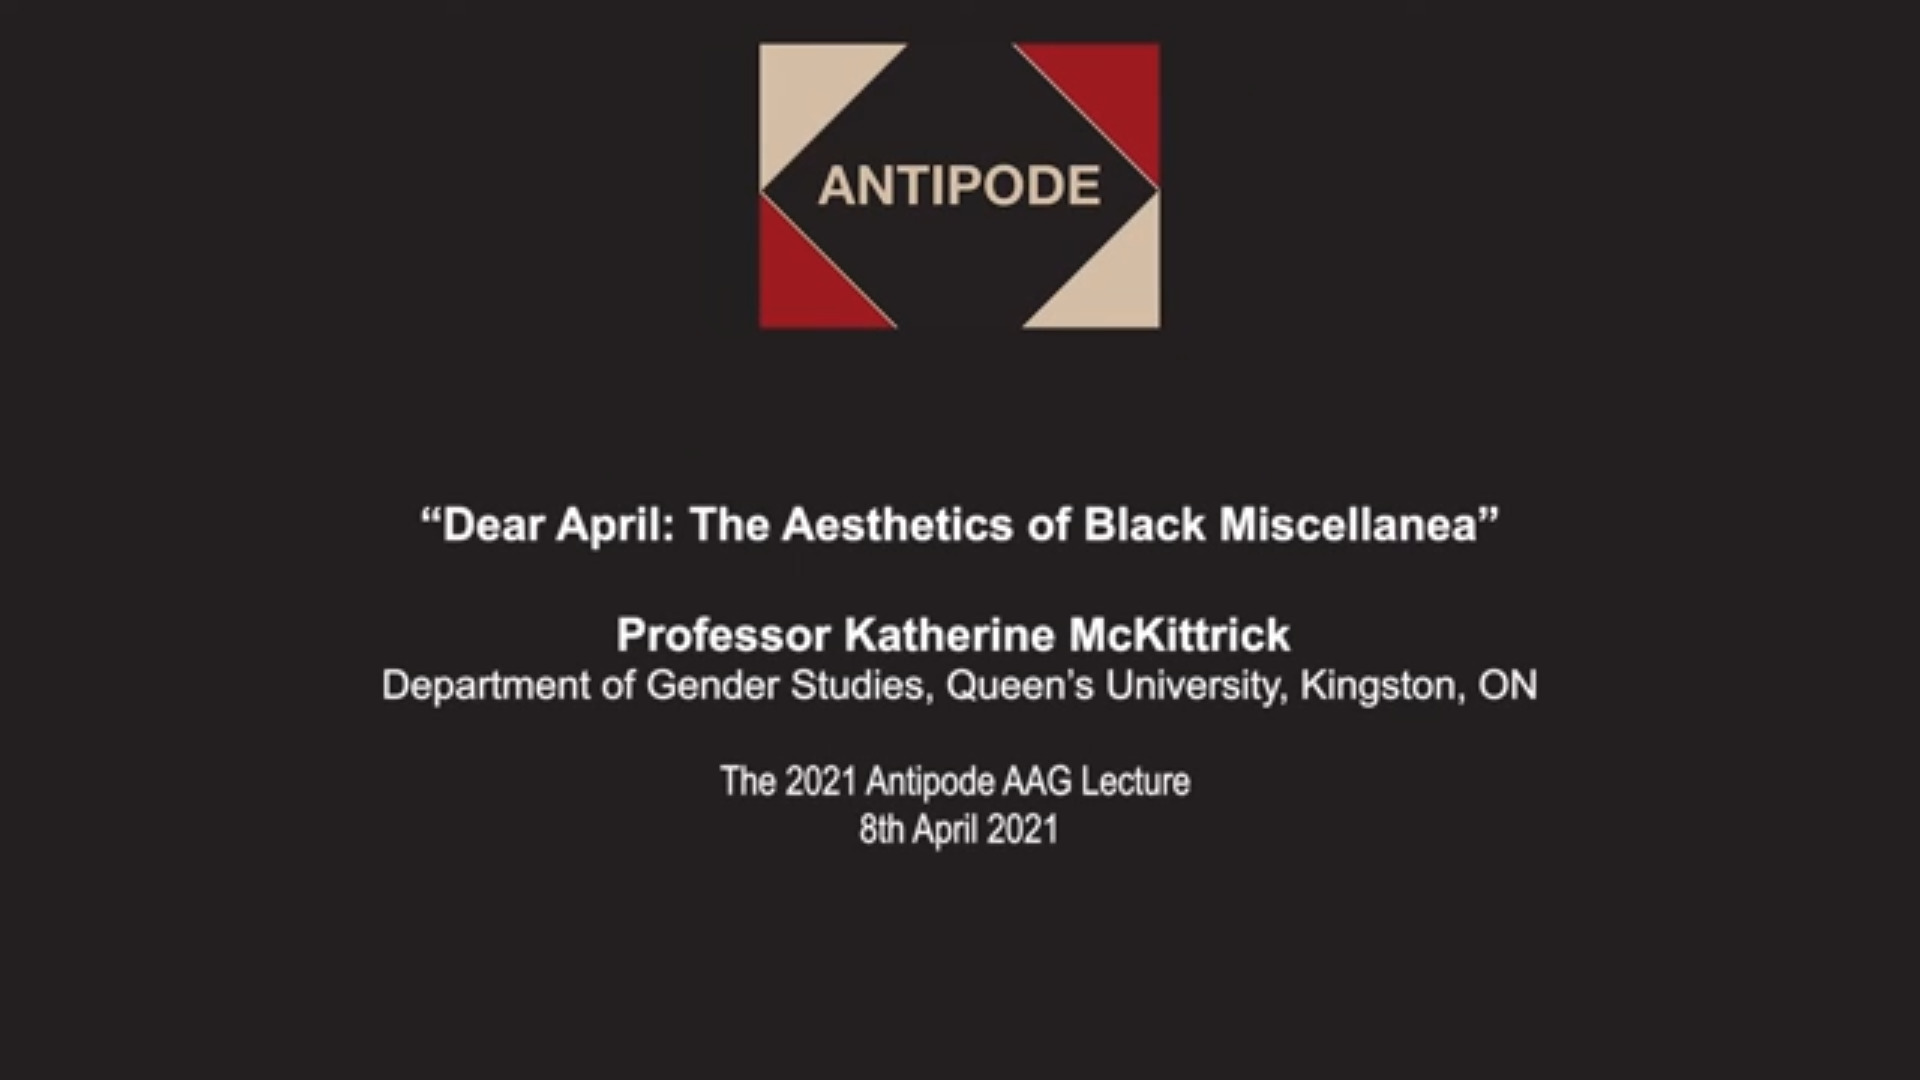 2021 Antipode AAG Lecture